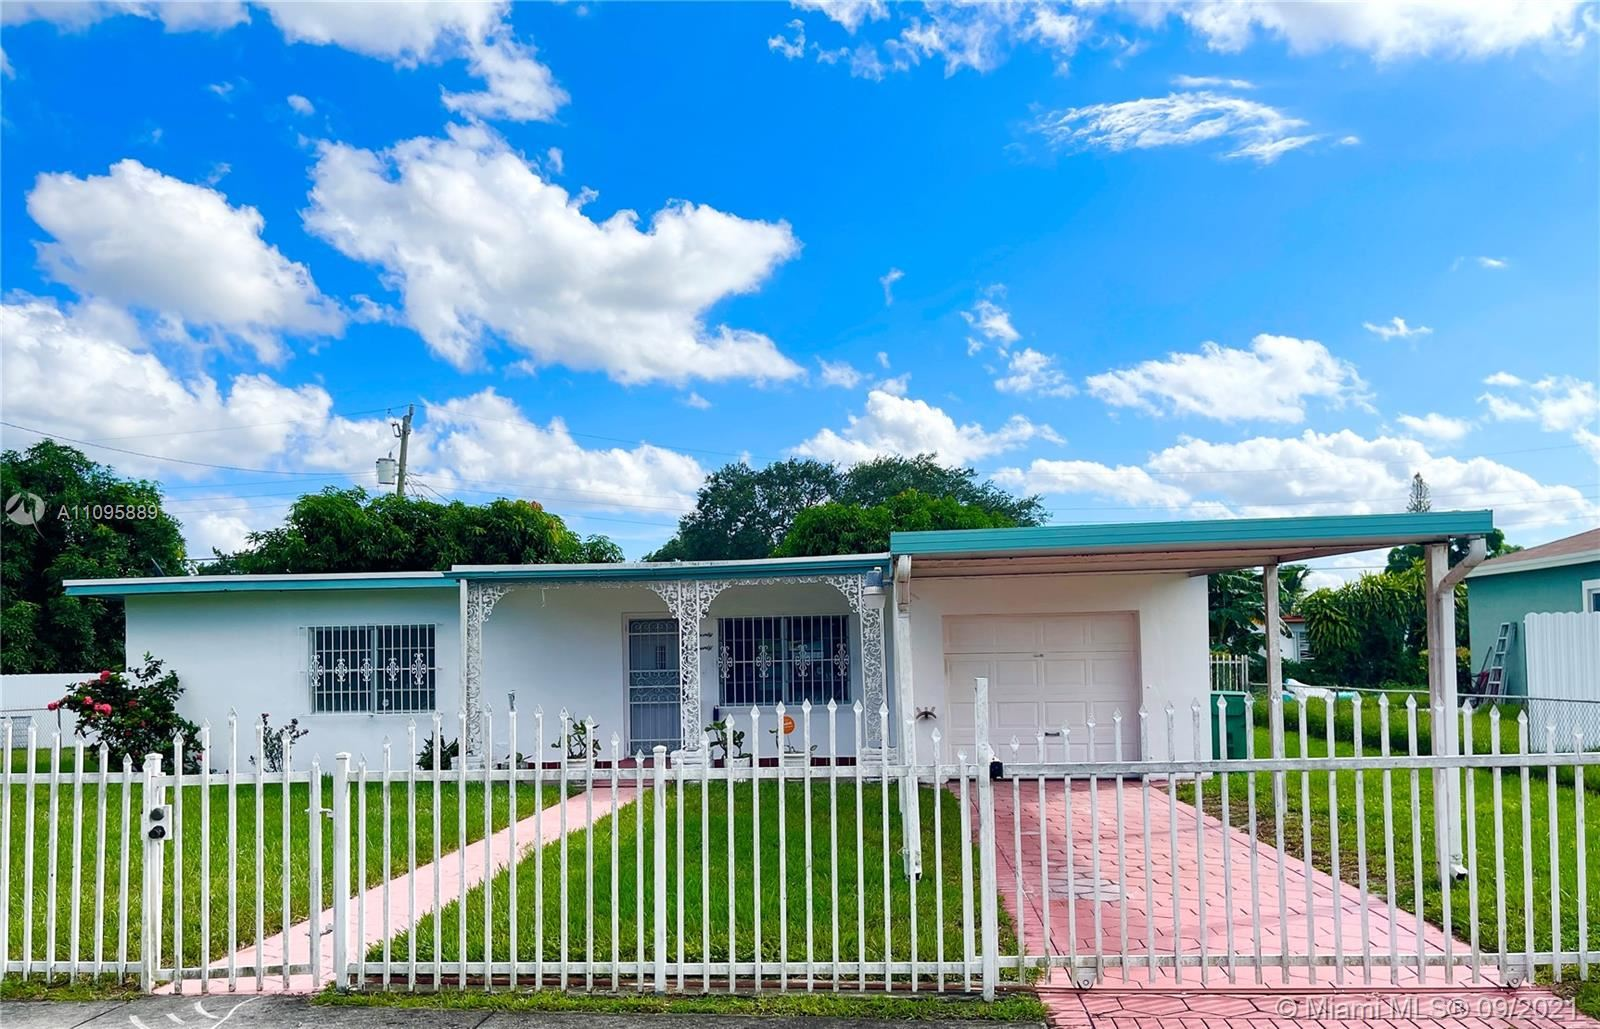 2420 NW 162nd Ter, Miami Gardens, FL 33054 - #: A11095889